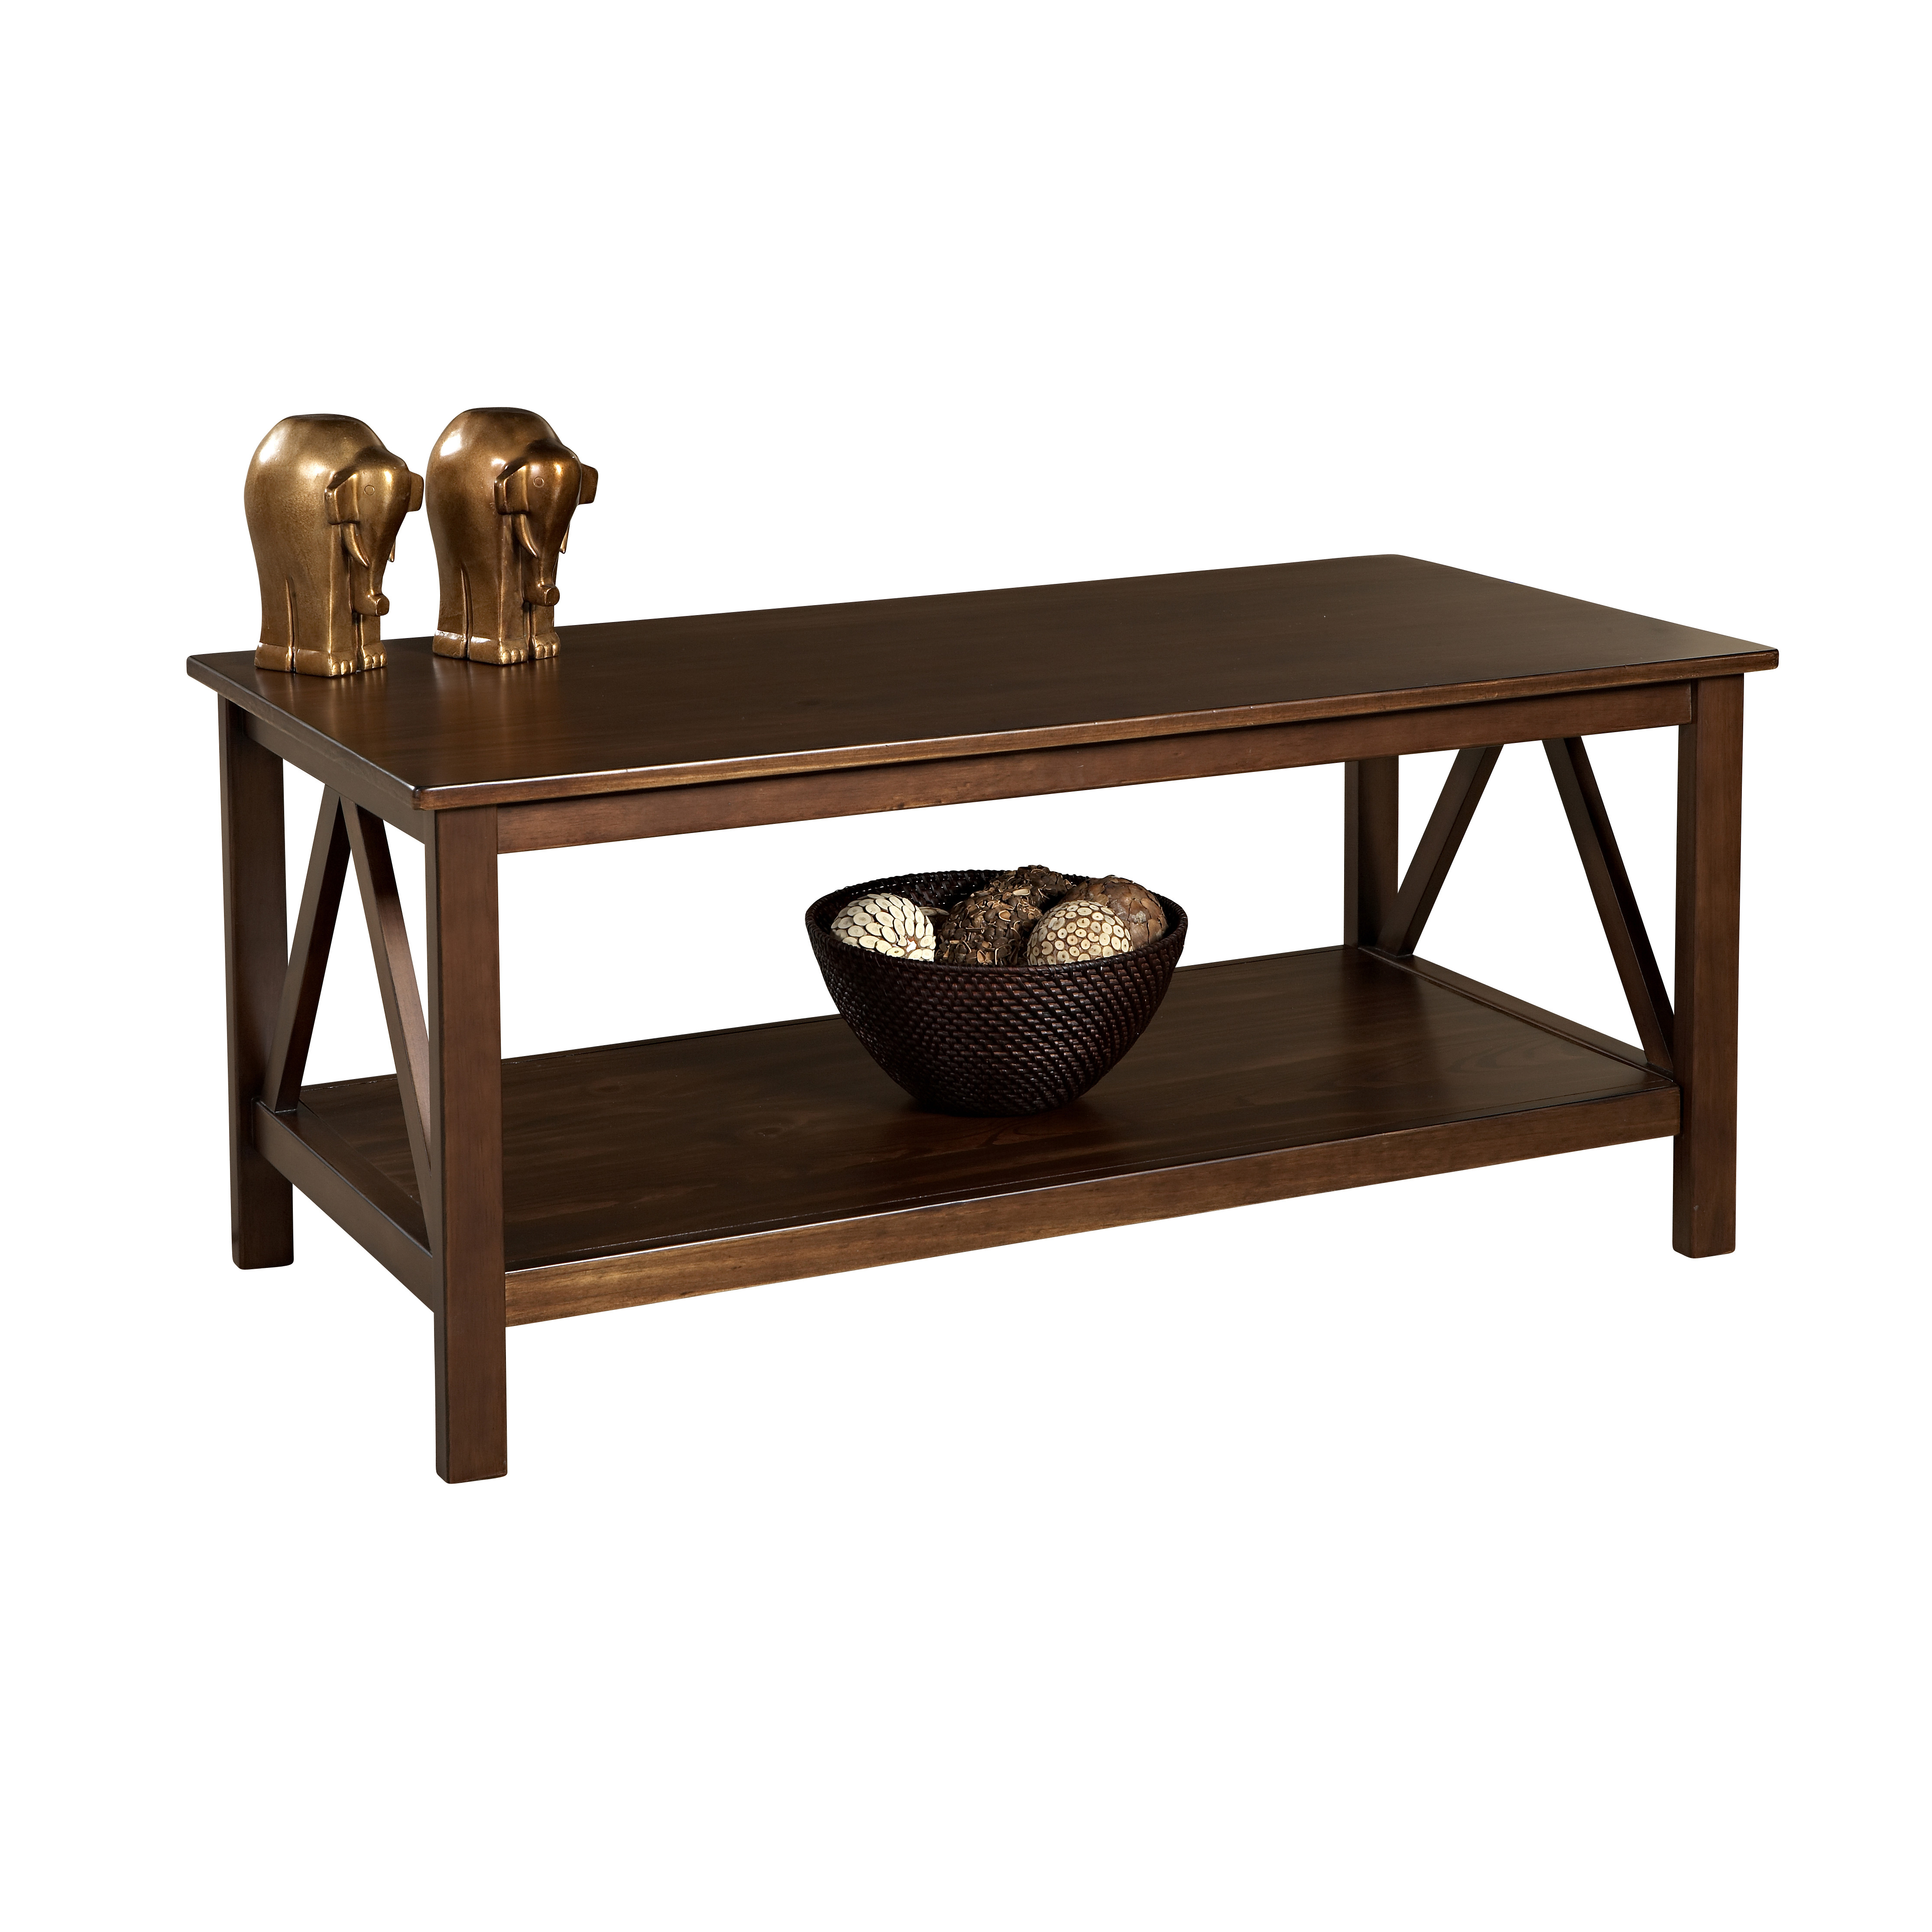 Alluring Wildon Home Bar Table | Cozy Wildon Home